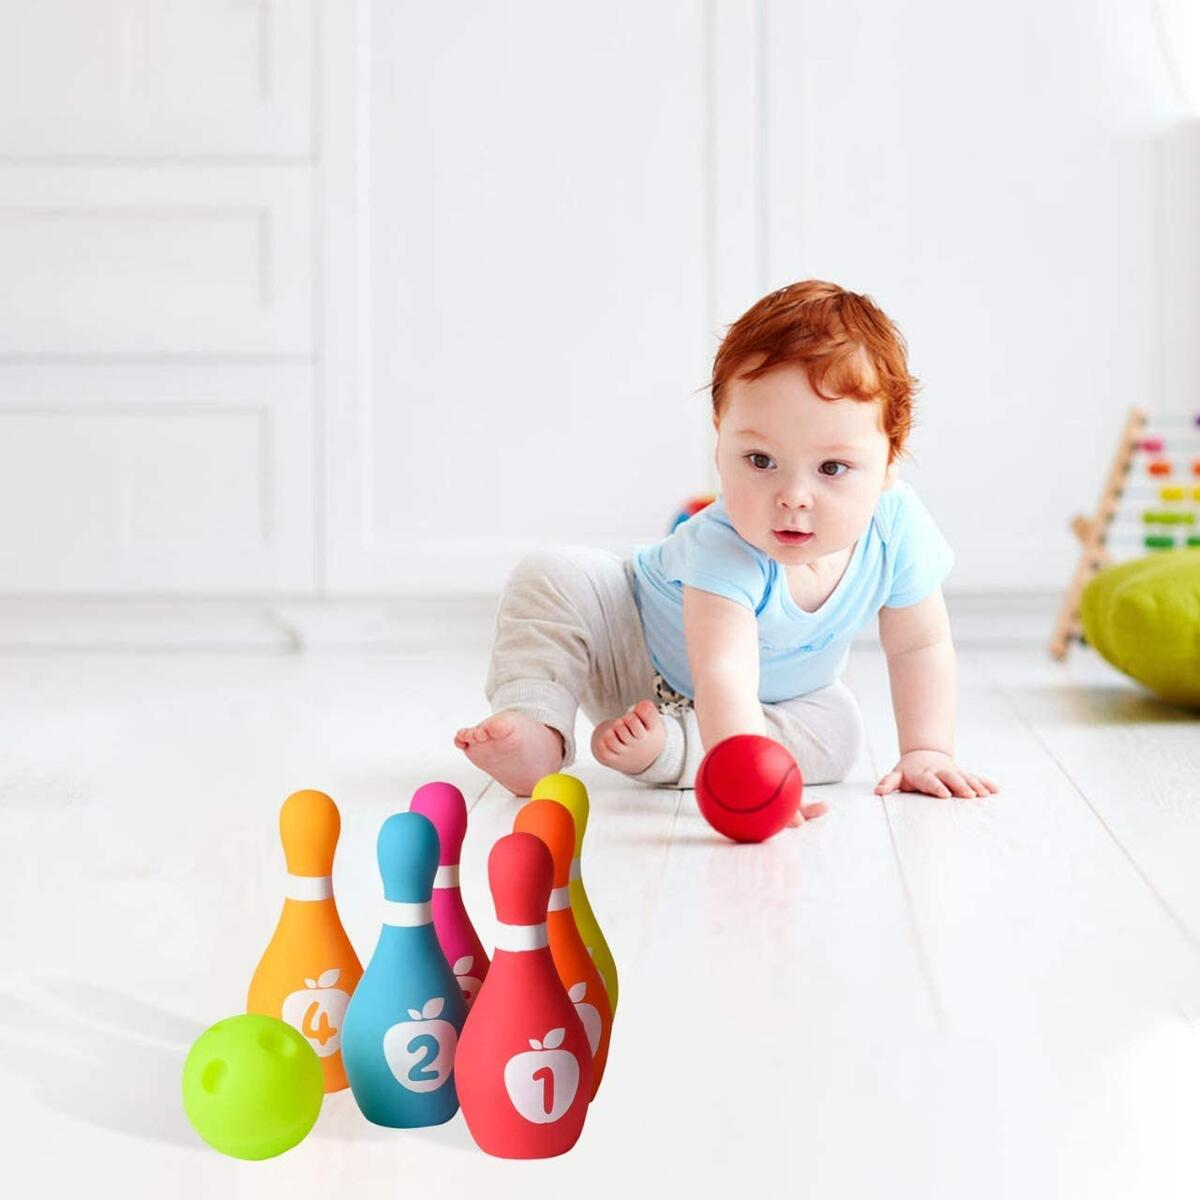 Soft Baby Bowling Set 7-Piece Soft Bowling Game for Boys & Girls w/ Colorful Numbered Pins & Ball Safe, Great Toy for Indoor or Outdoor Birthday, Toddler & More Ages 18M+